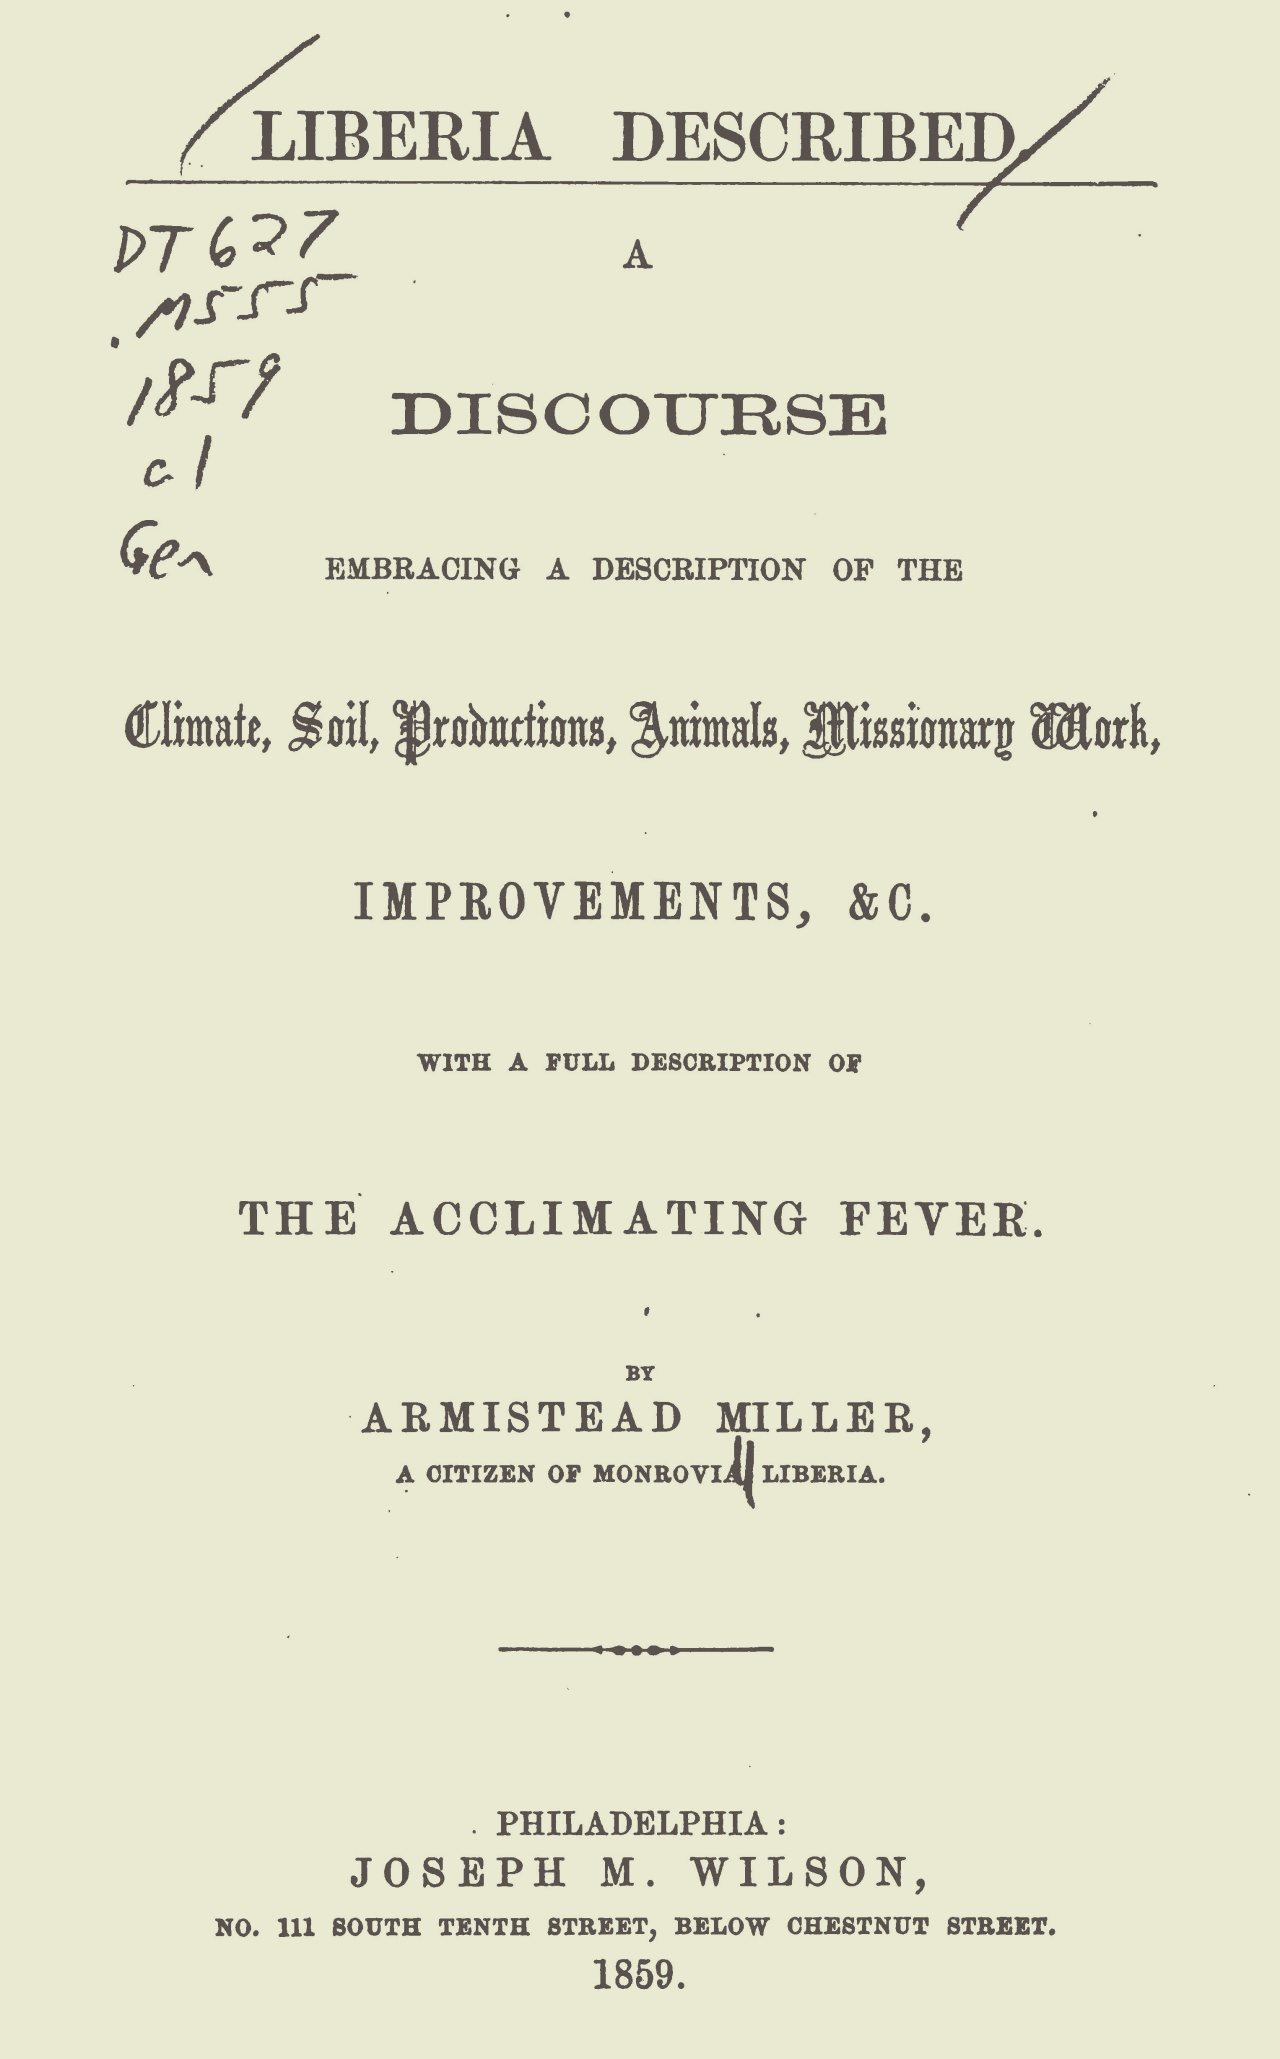 Miller, Armistead, Liberia Described A Discourse Title Page.jpg